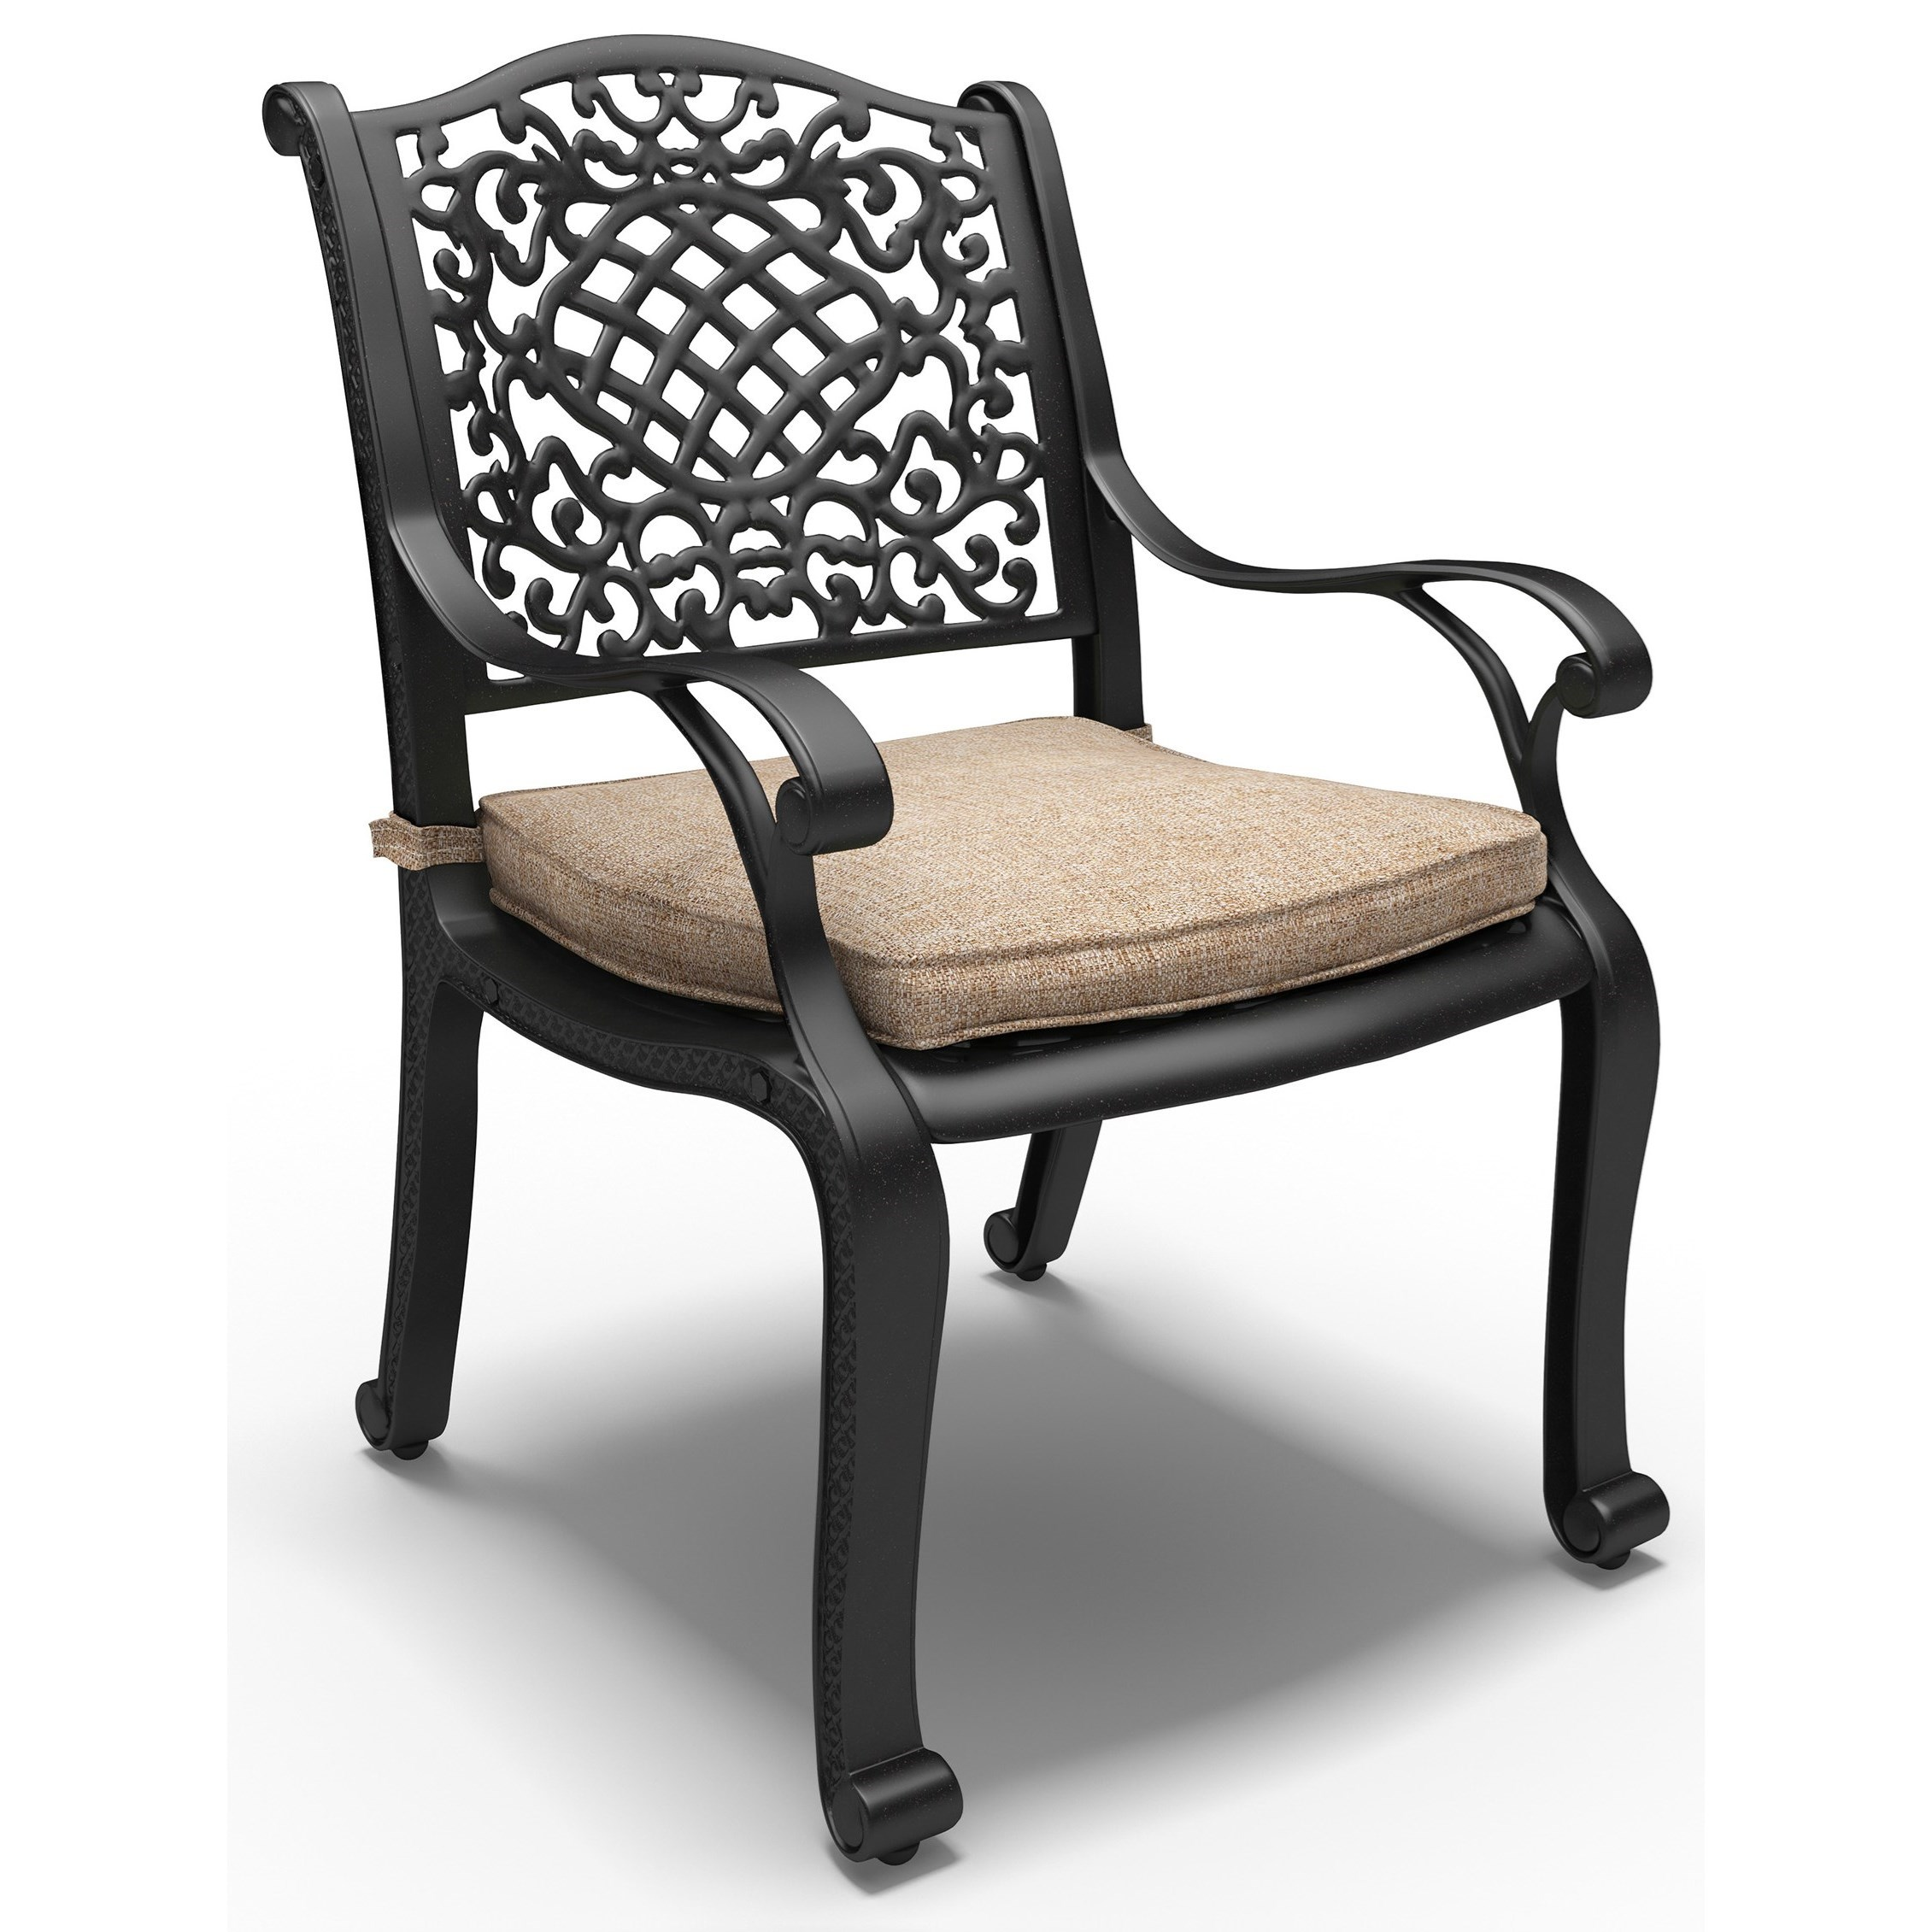 Rose View Set of 2 Chairs with Cushion by Signature Design by Ashley at Lapeer Furniture & Mattress Center